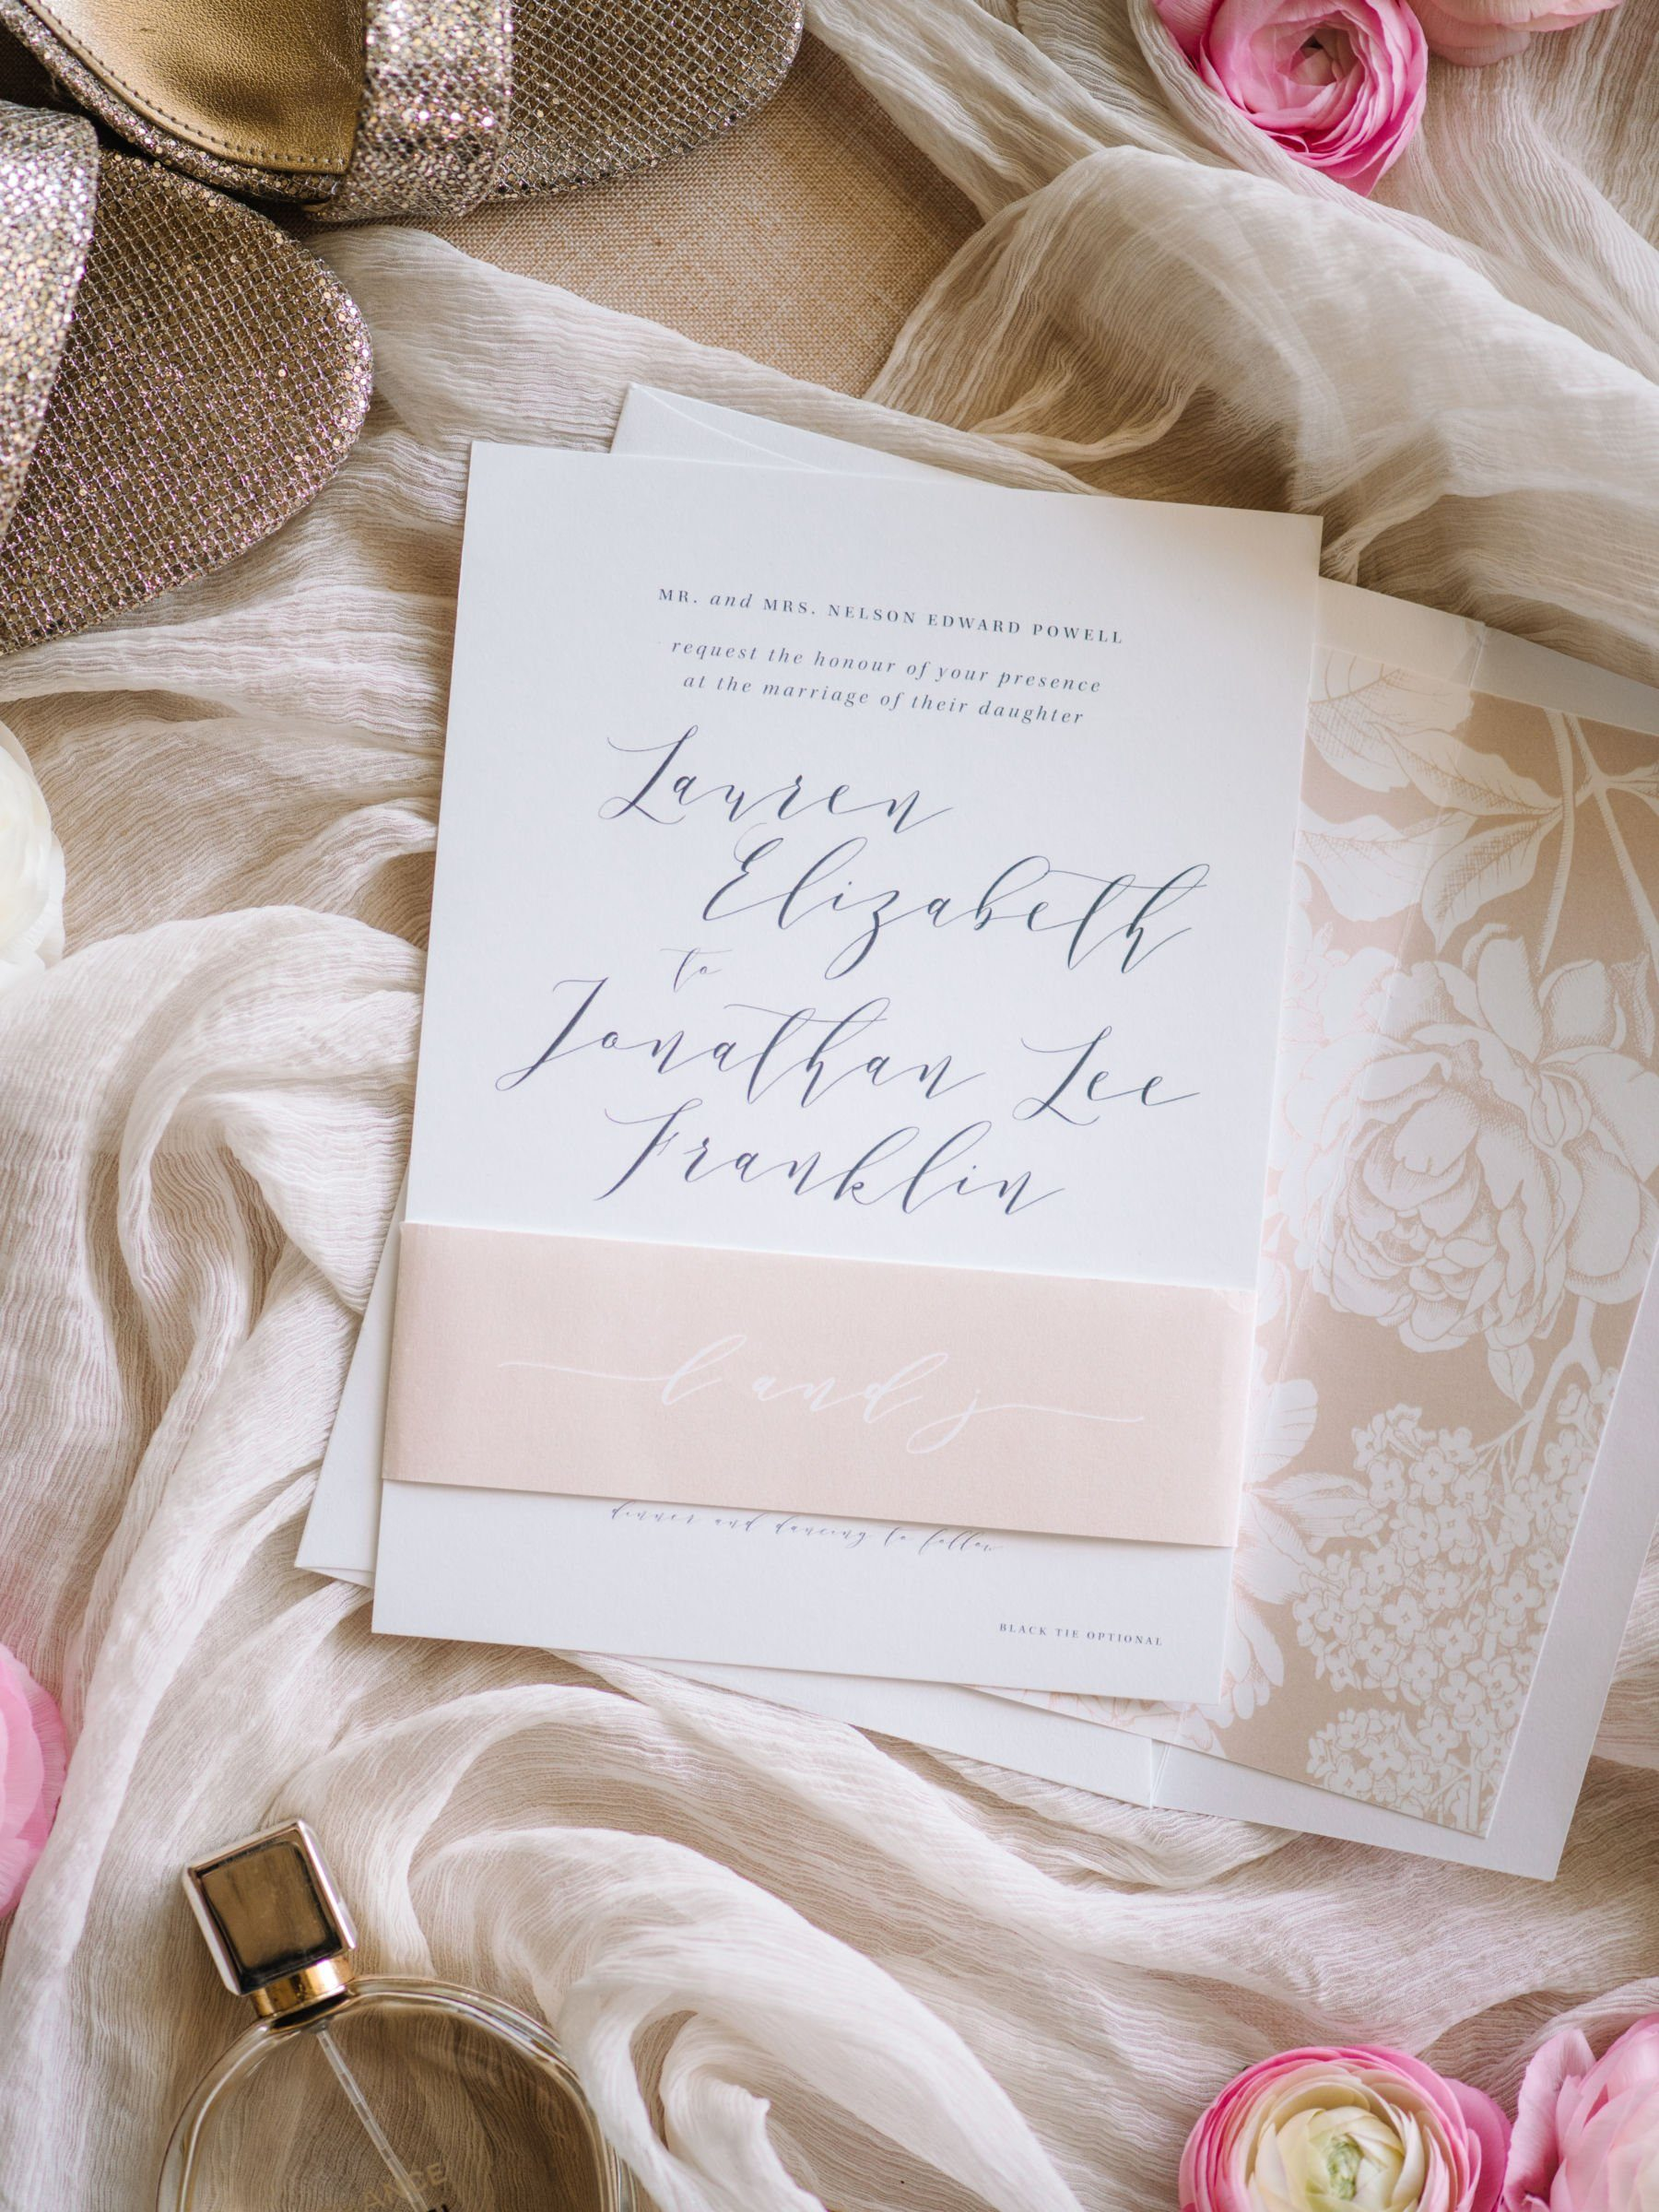 breathtaking wedding invitation with modern calligraphy and a rose gold wrapper and envelope liner